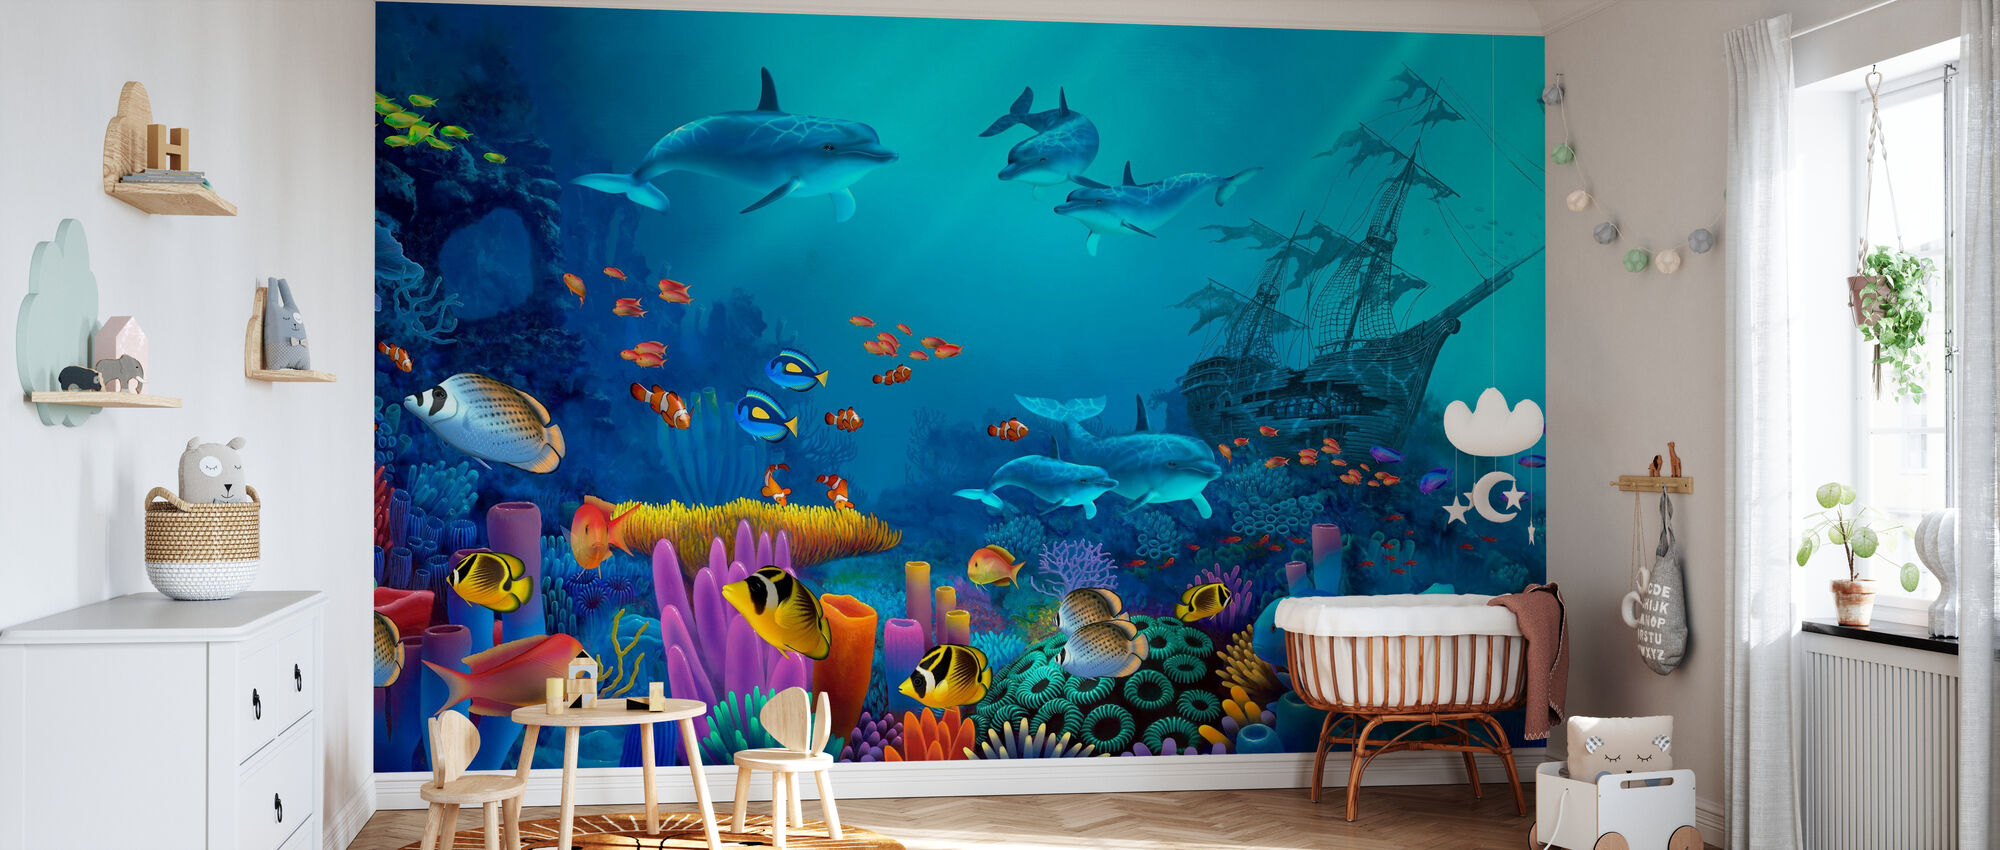 Ocean Colors - Wallpaper - Nursery